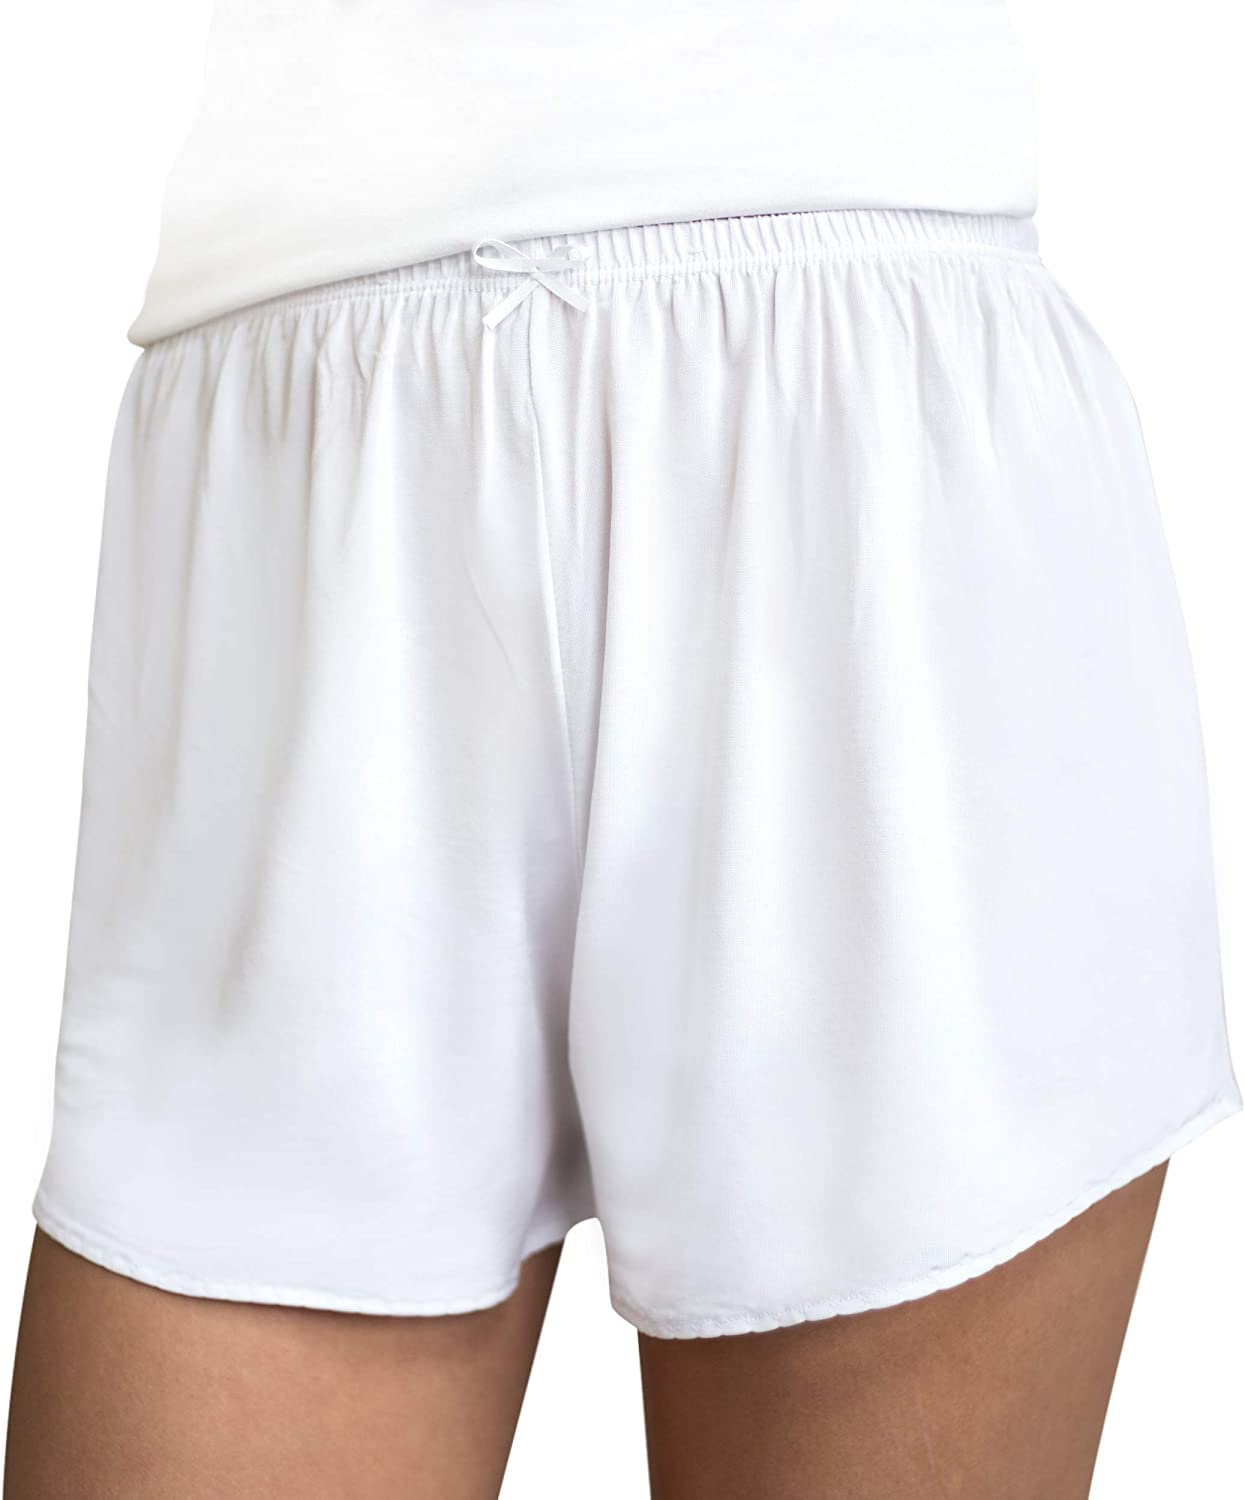 DINOBASSI Pettipants Half Slips For Bloomers - Ranking TOP6 Comfortable At the price Women